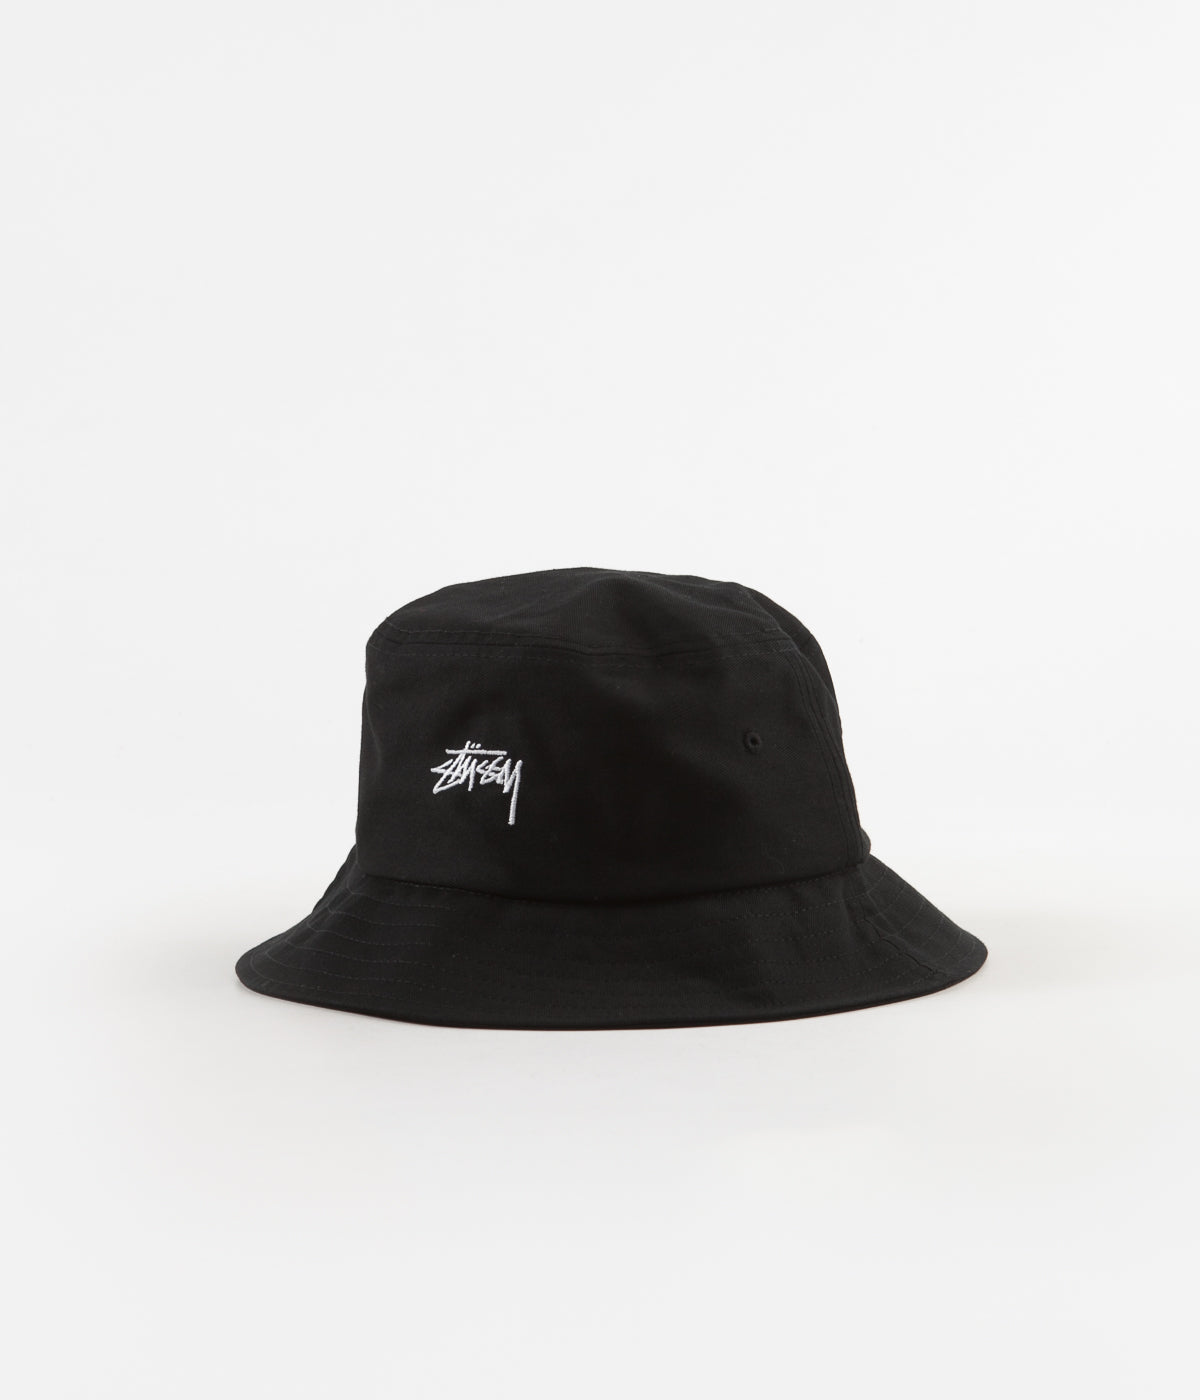 6acb56614dc Stussy Stock Bucket Hat - Black Stussy Stock Bucket Hat - Black ...